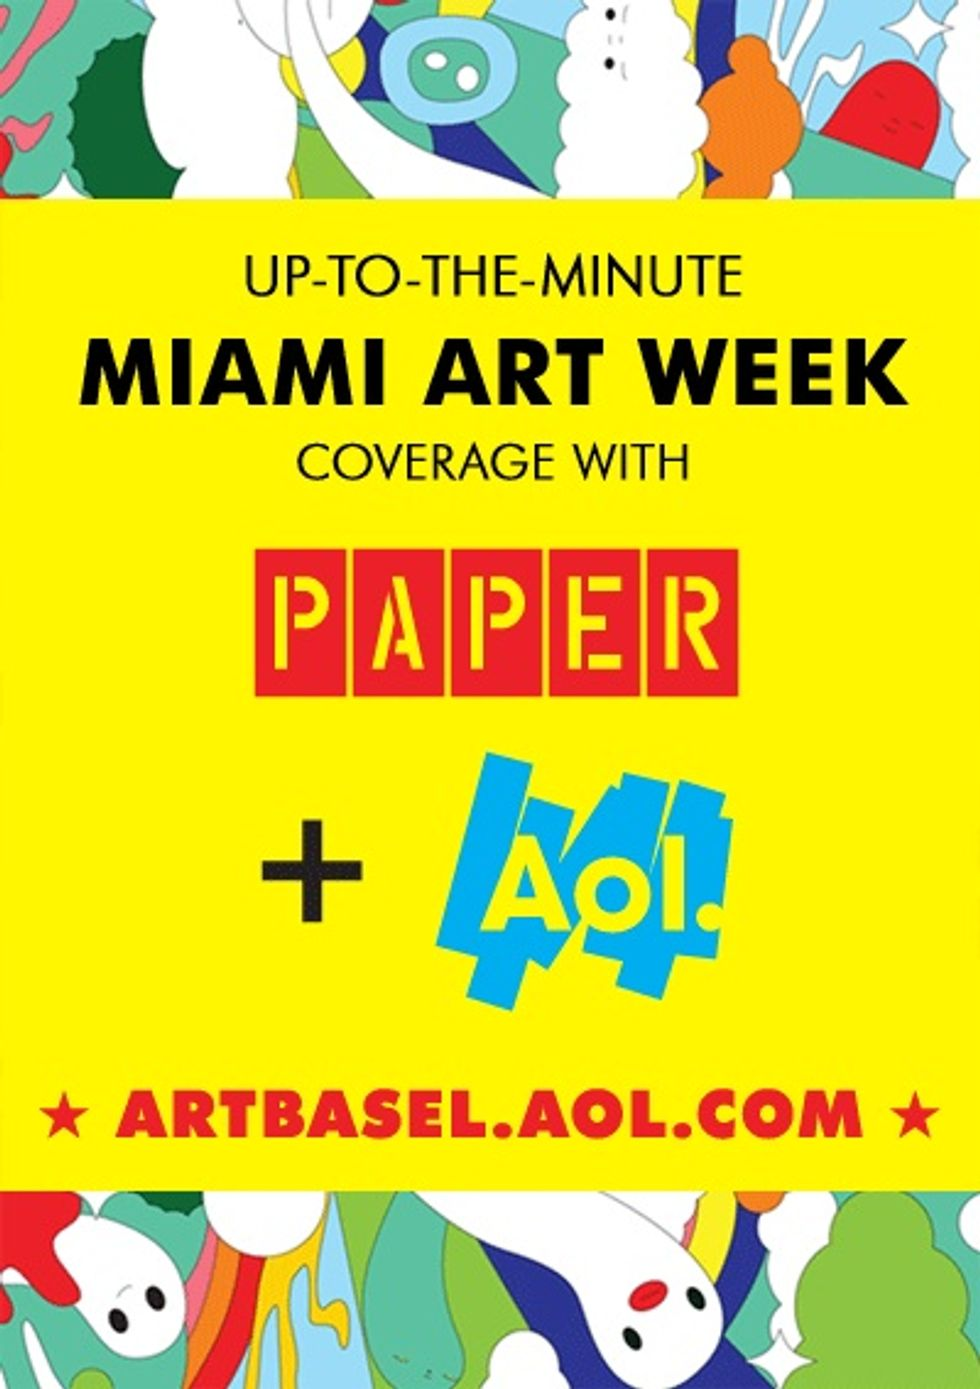 PAPER + AOL Team Up For Art Basel Miami Beach 2010!